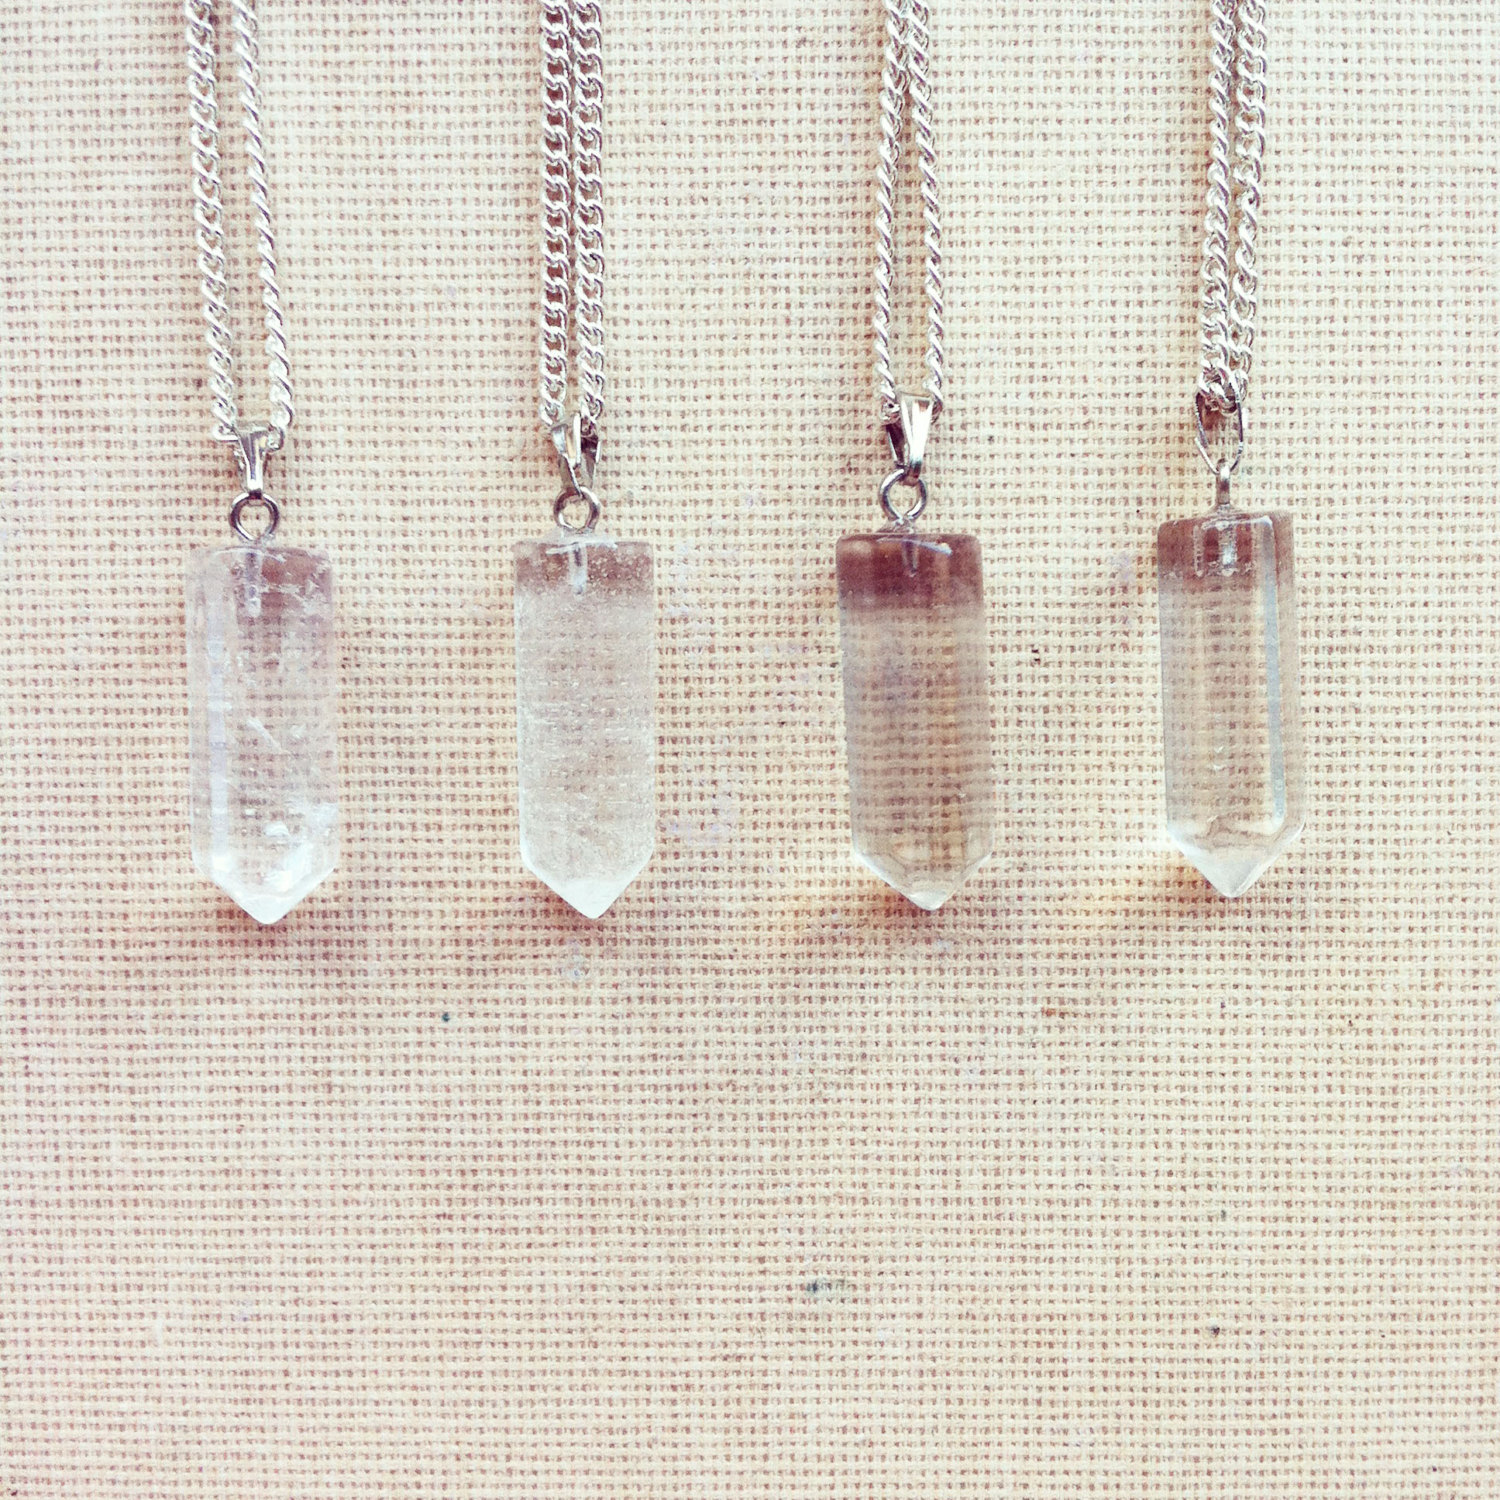 Clear Crystal Necklace- Birthstone Necklace Point Necklace Crystal Gemstone Necklace Hexagon Necklace Gemstone Pendant Rock FREE SHIPPING